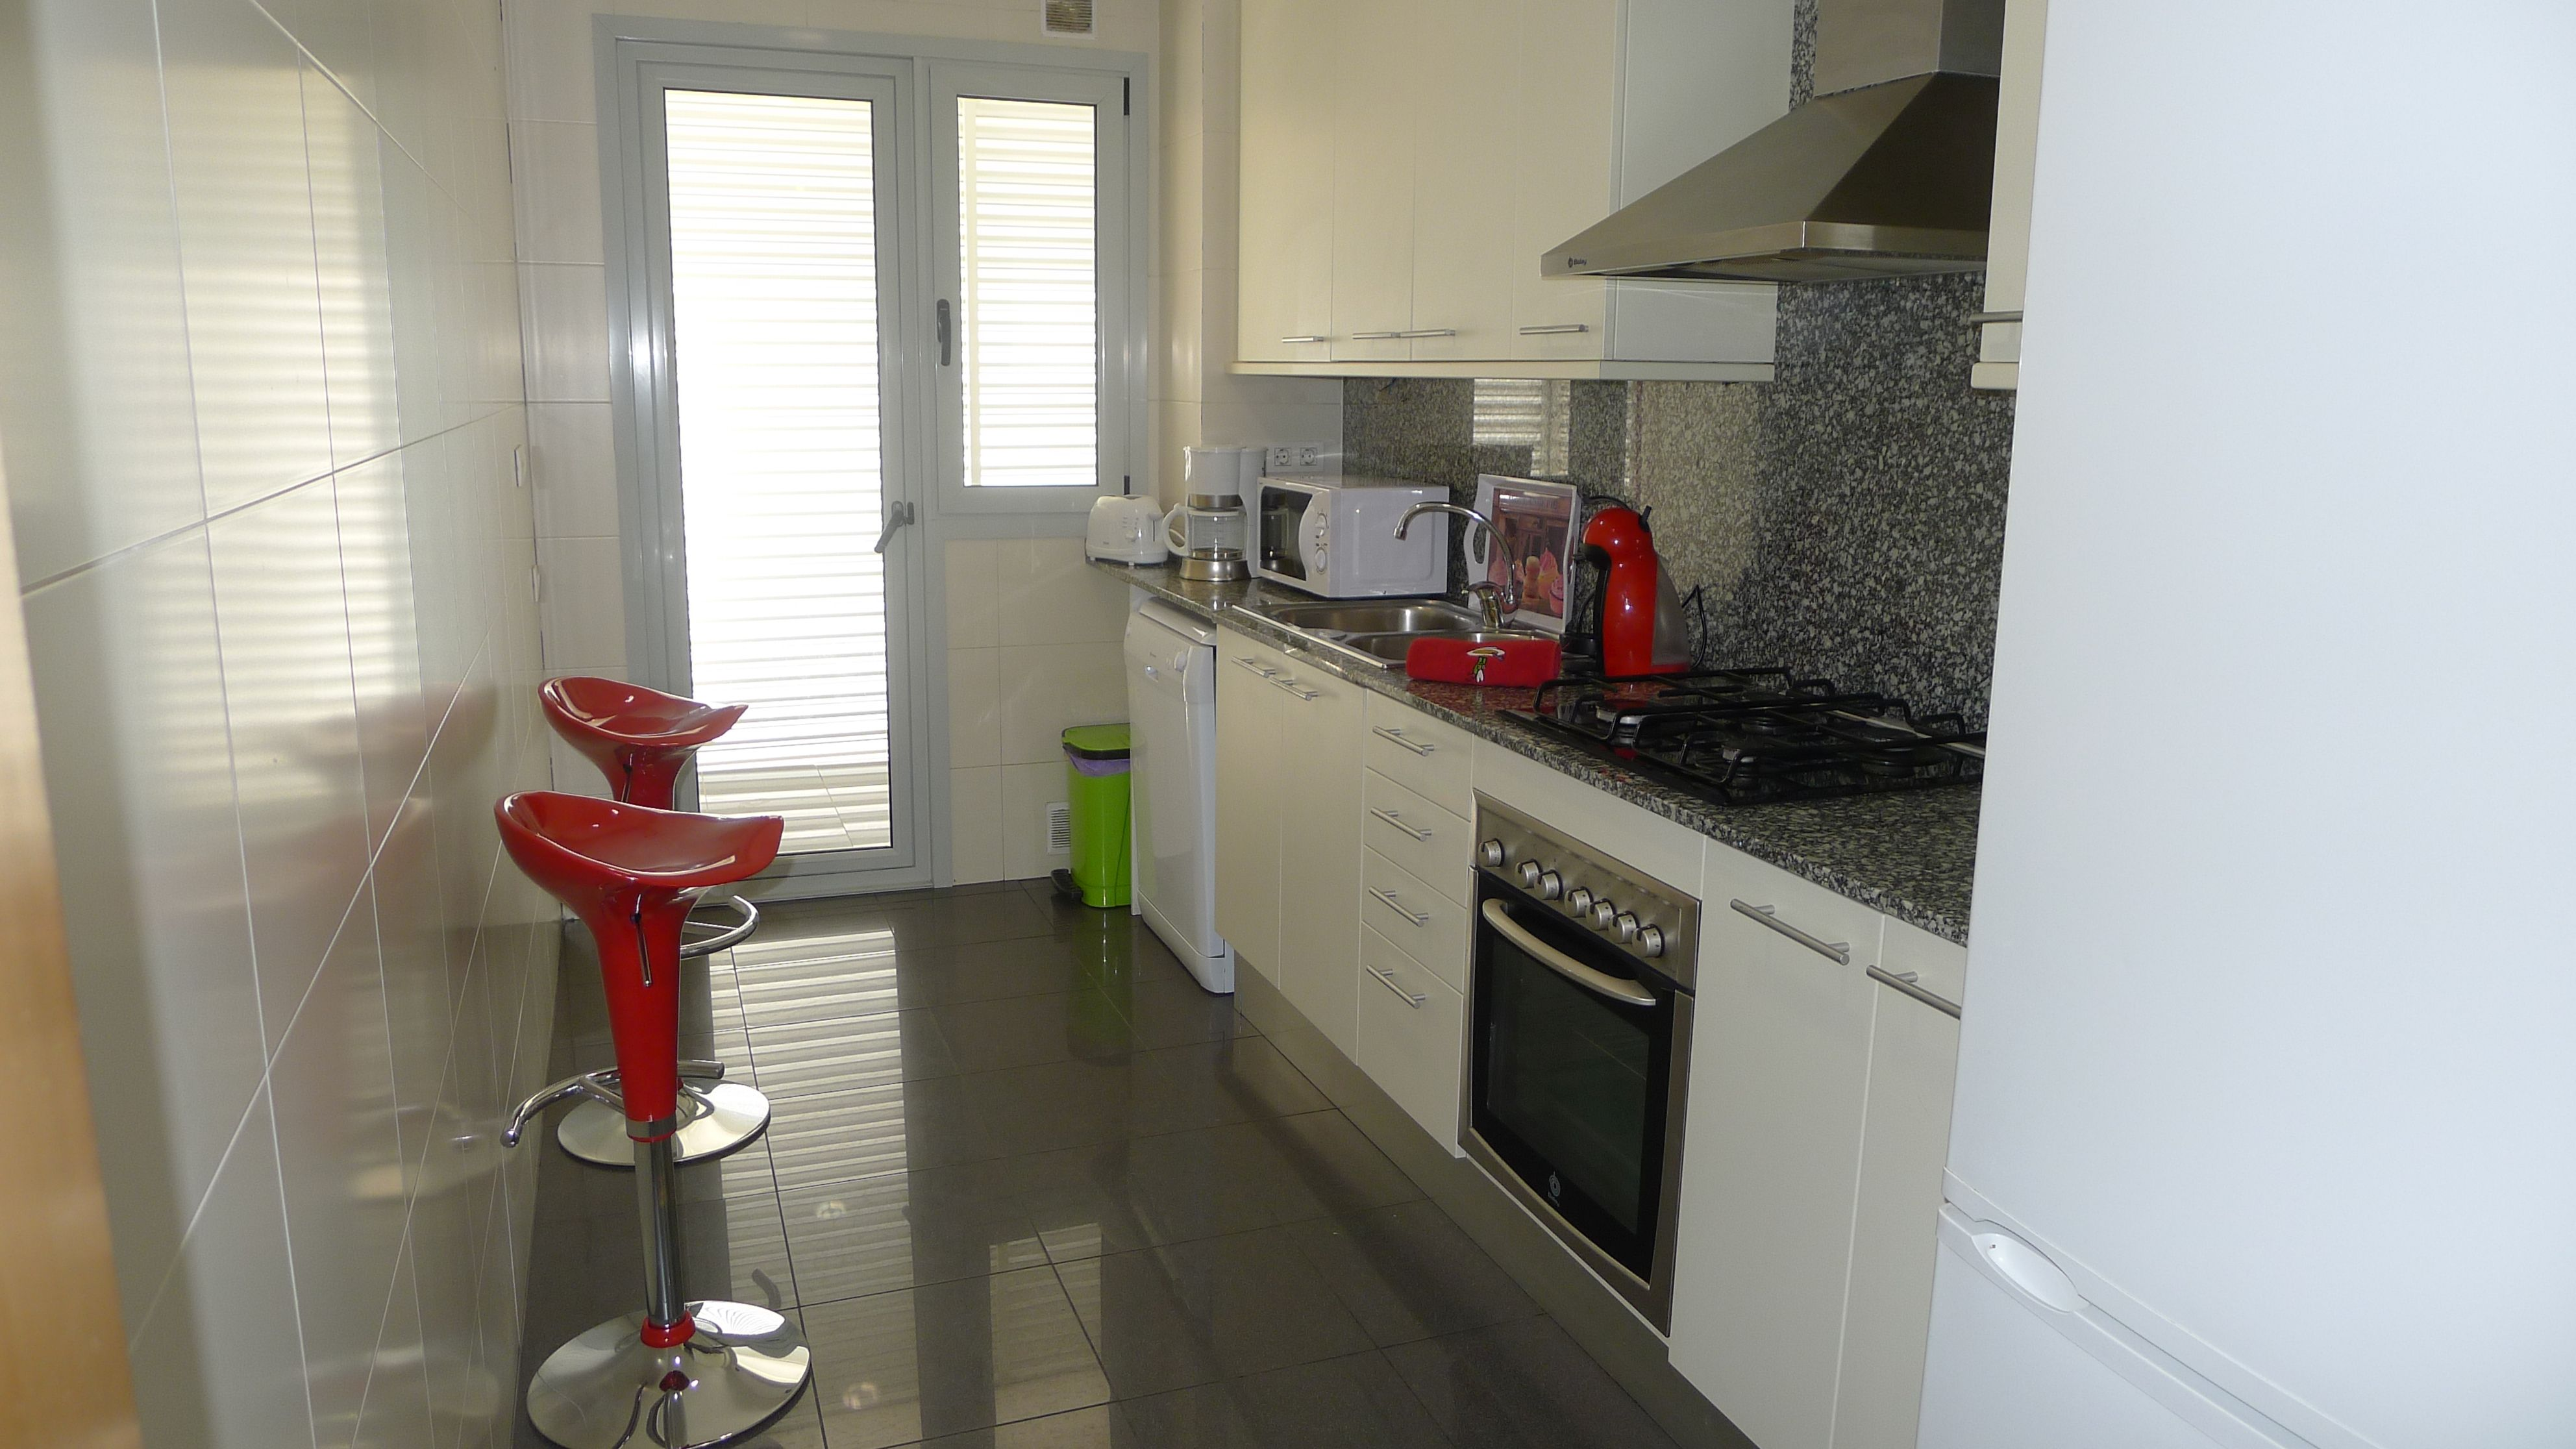 stove, fridge, dishing washer, toaster, coffee machine, kettle, microwave, washi